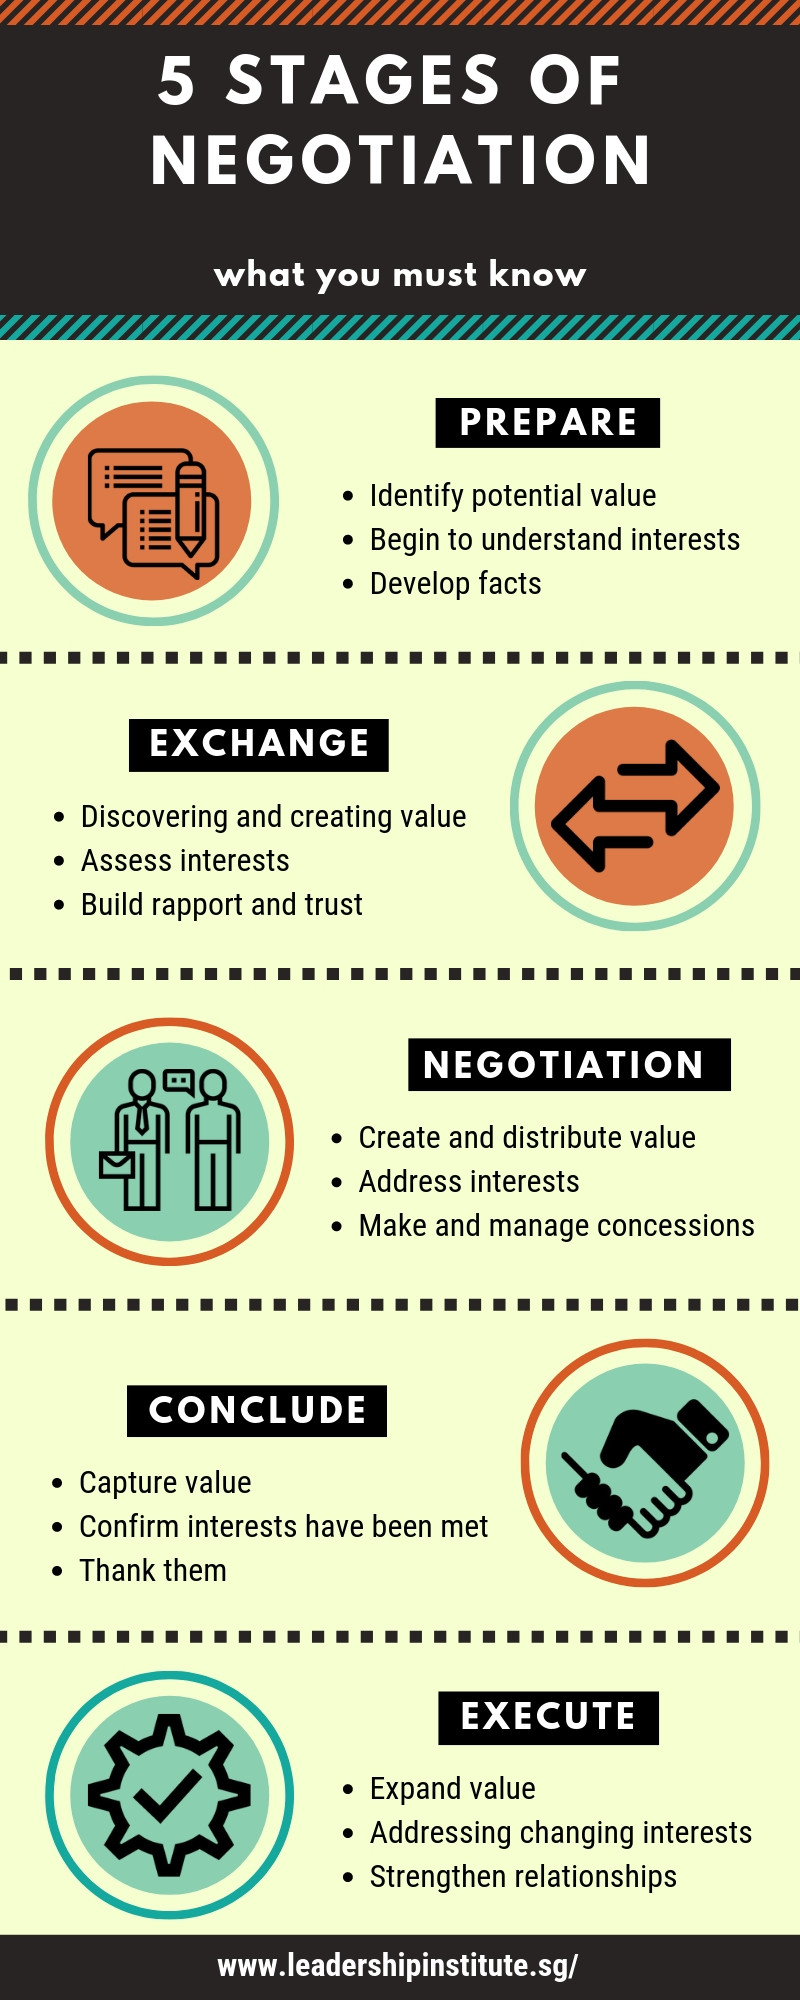 5 stages of negotiation